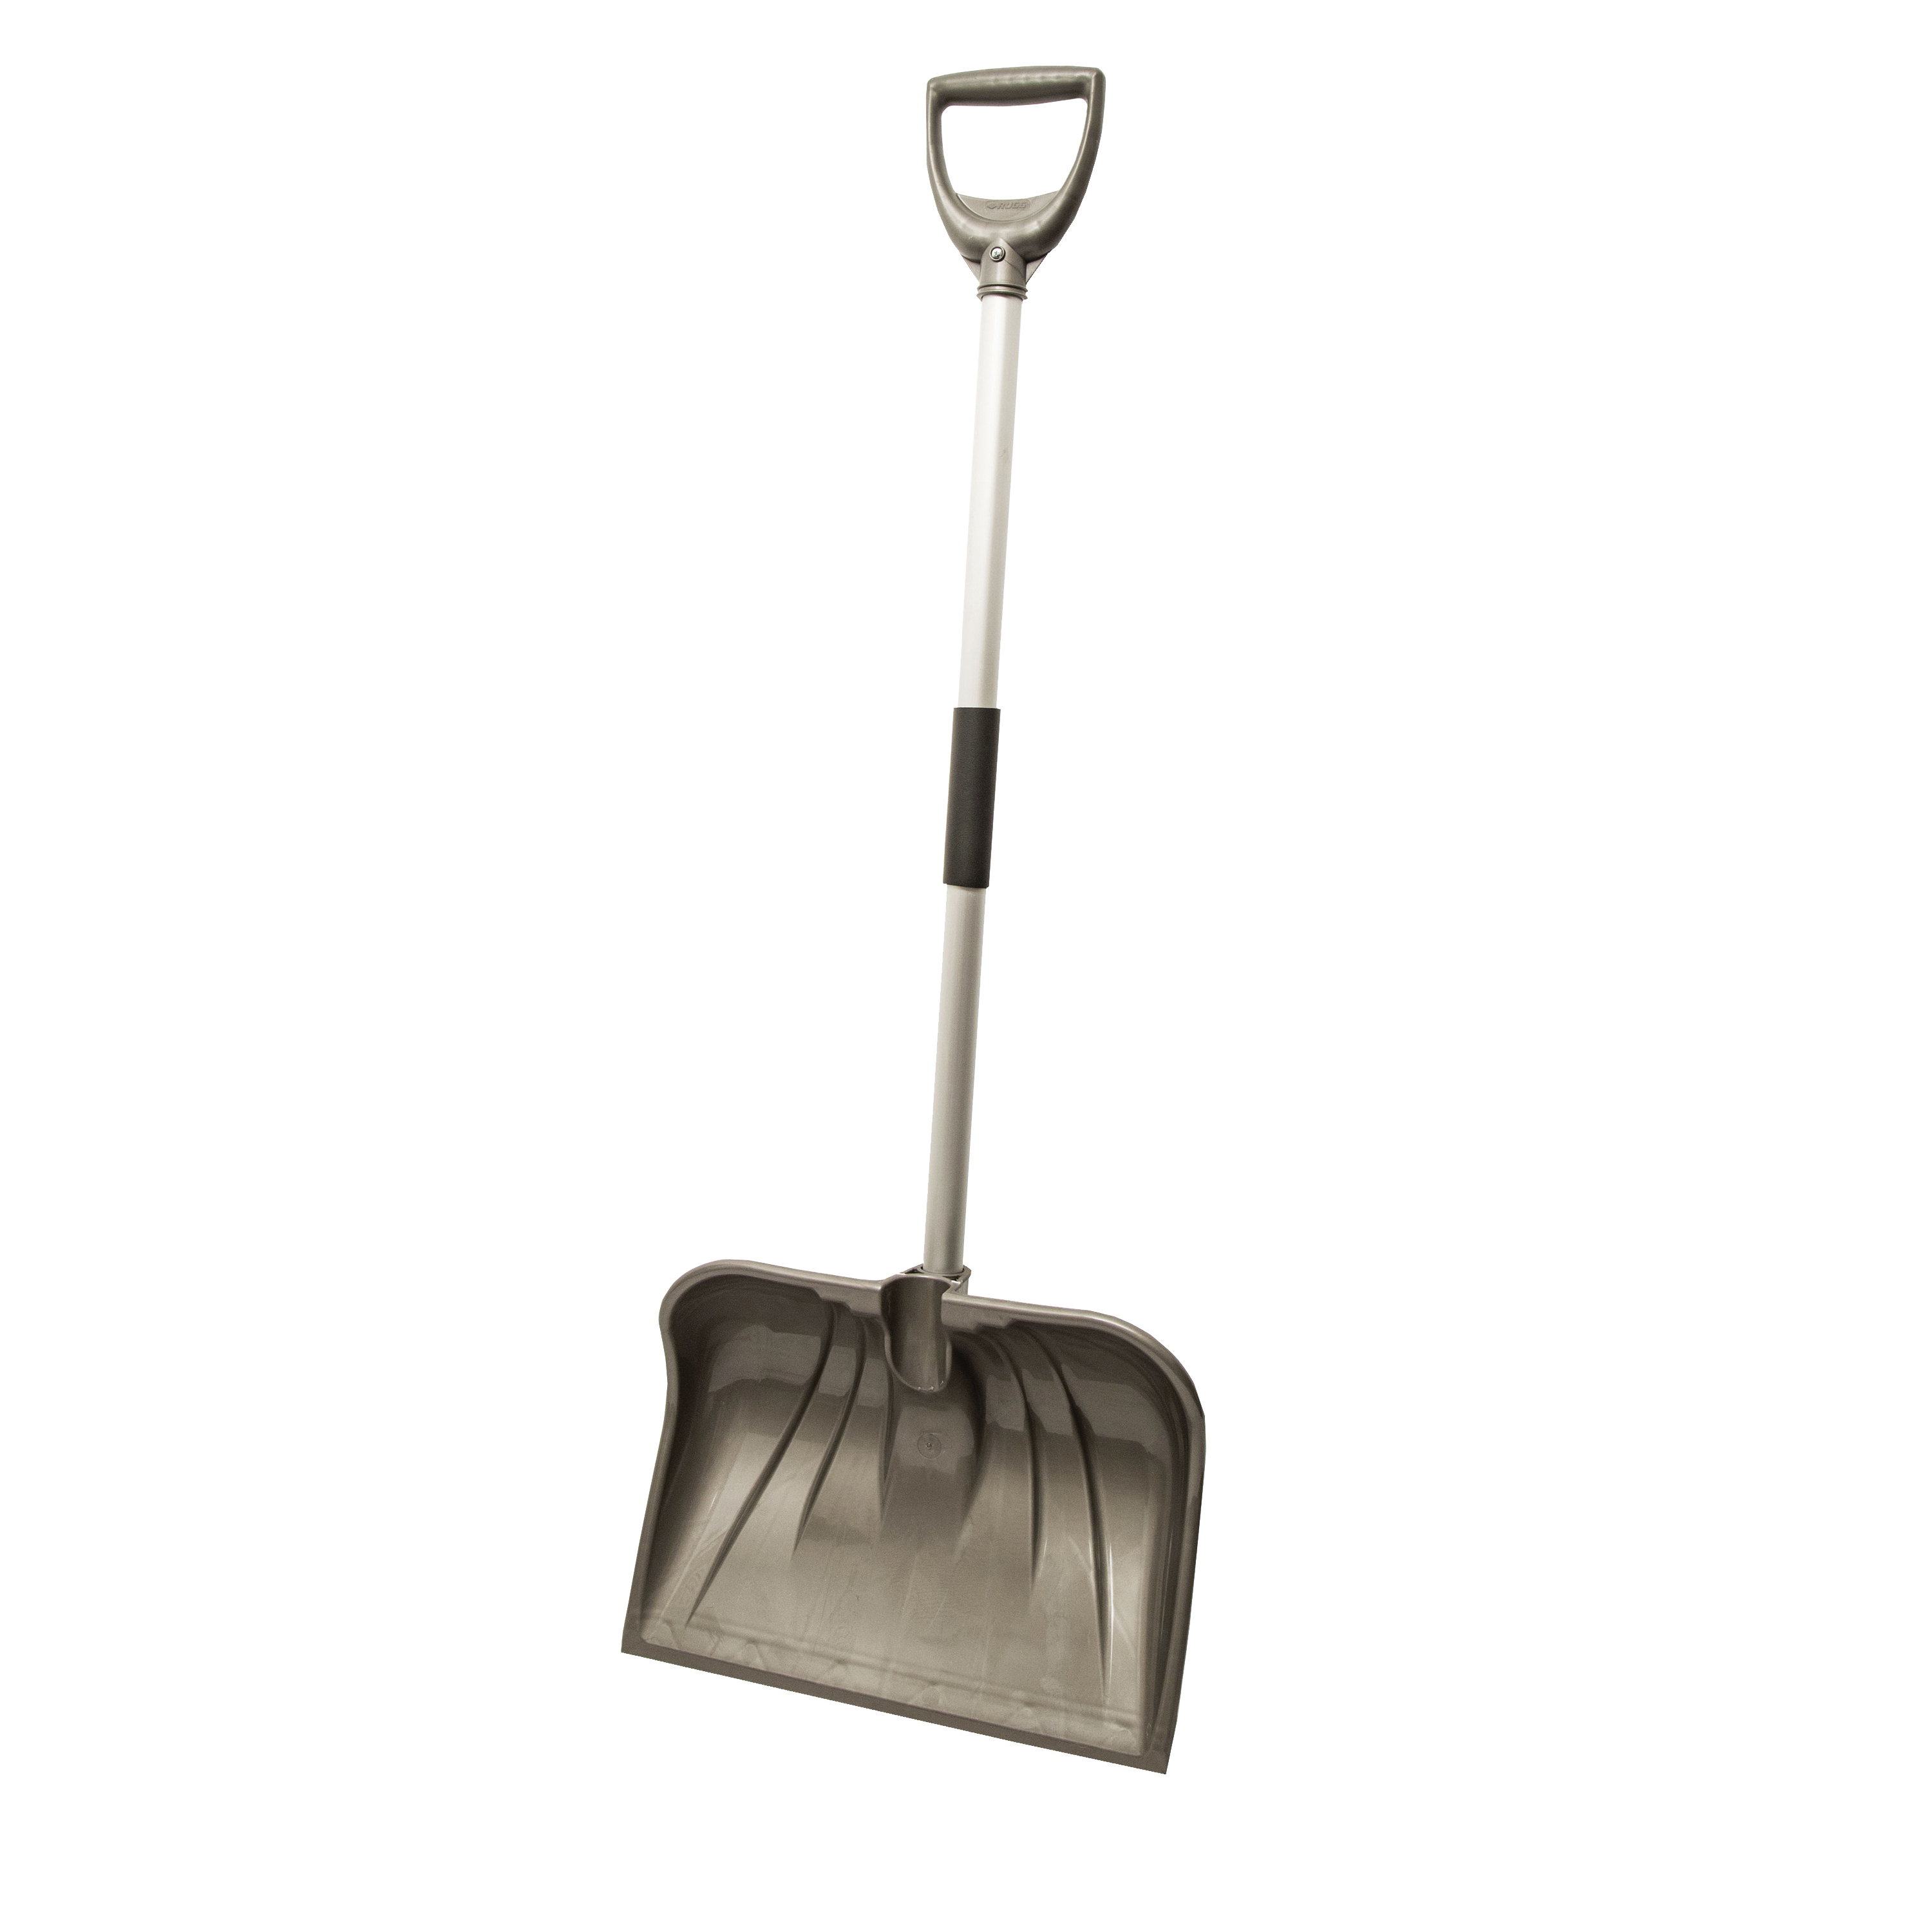 Picture of RUGG Lite-Wate 26PL-S Snow Shovel, 18 in W Blade, Combo Blade, Polyethylene Blade, Aluminum Handle, Navy